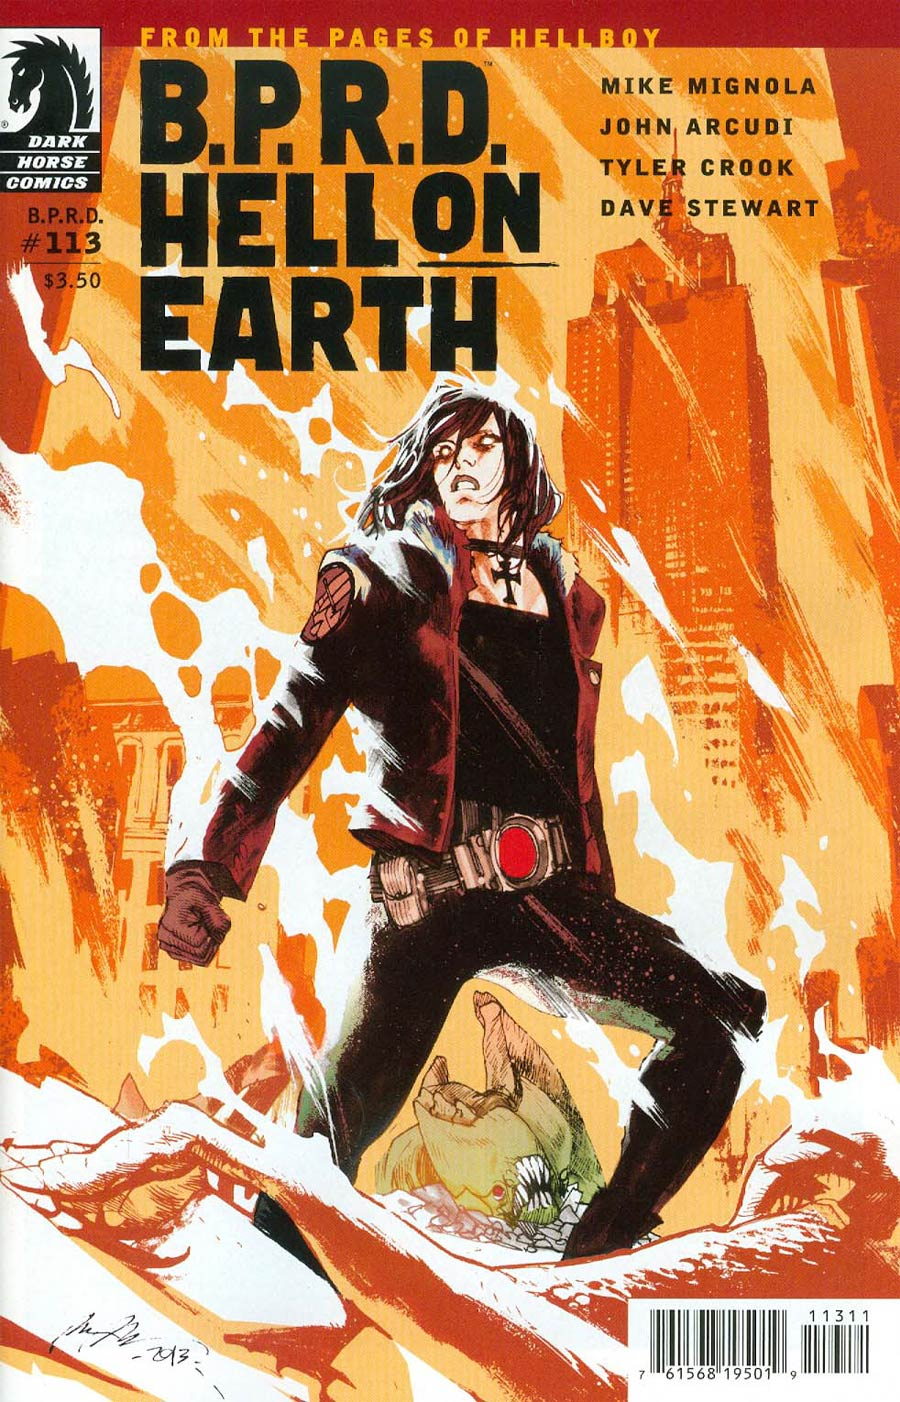 BPRD Hell On Earth #113